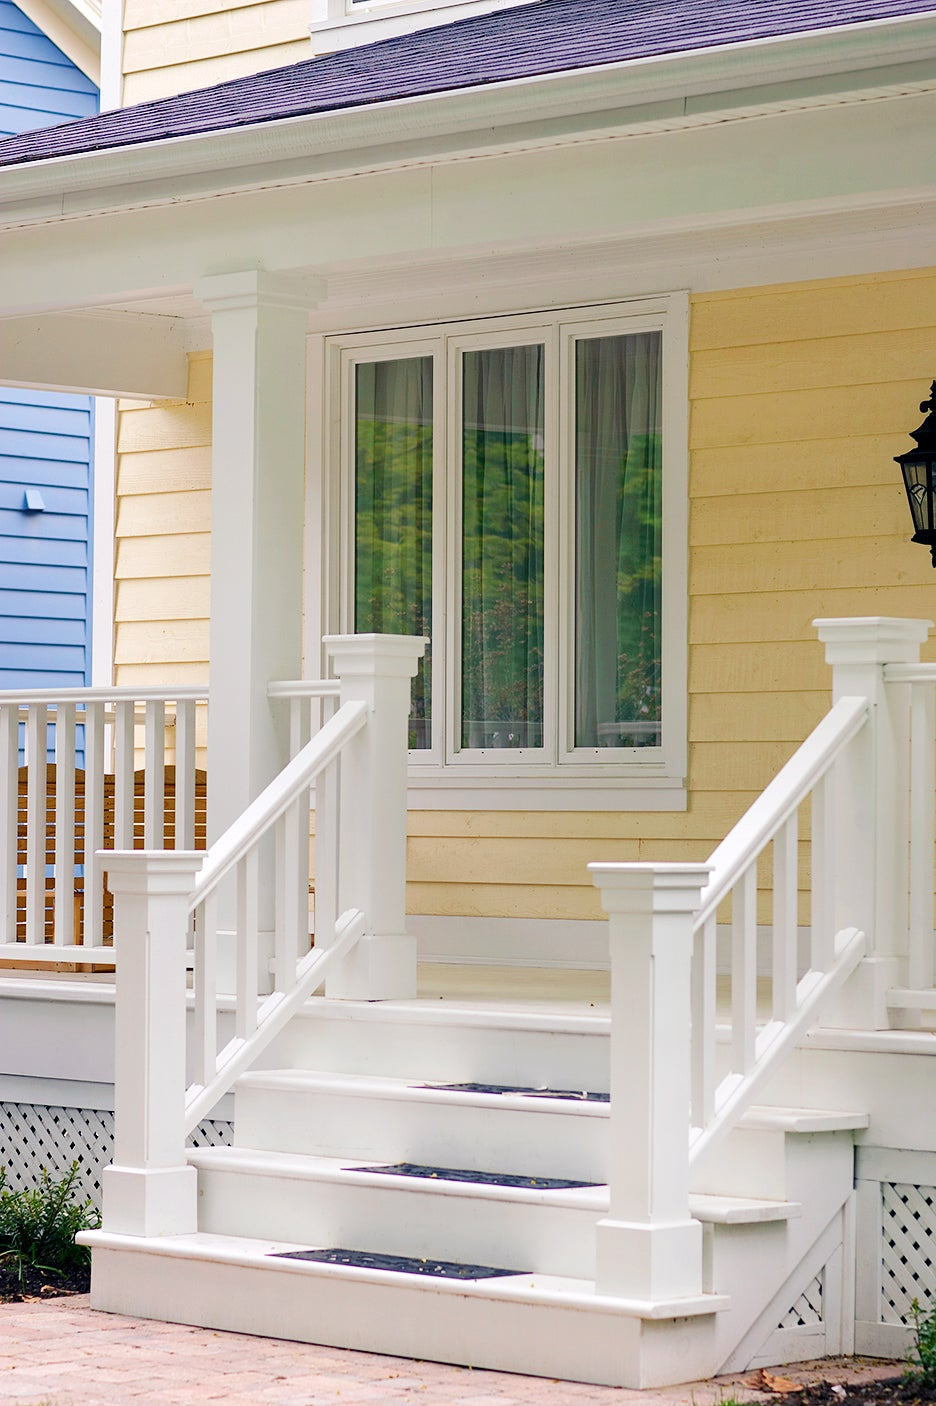 a front porch of a house